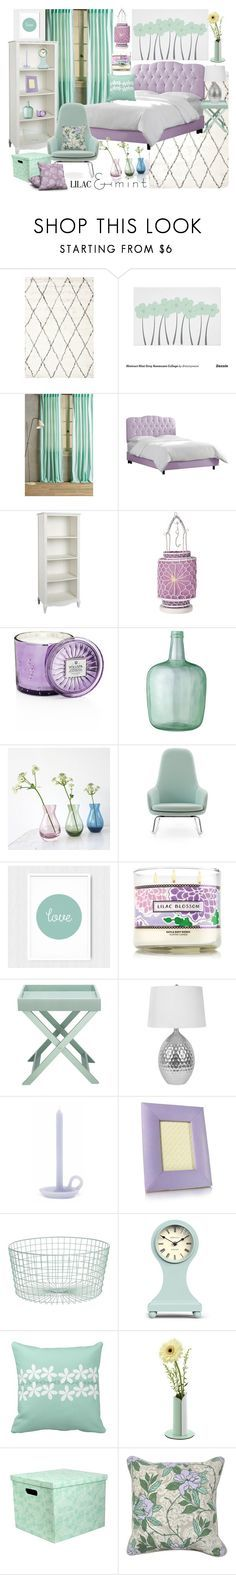 """fresh lilac and mint bedroom"" by kc-spangler ❤ liked on Polyvore featuring interior, interiors, interior design, home, home decor, interior decorating, Anthropologie, Skyline, PBteen and Cultural Intrigue"